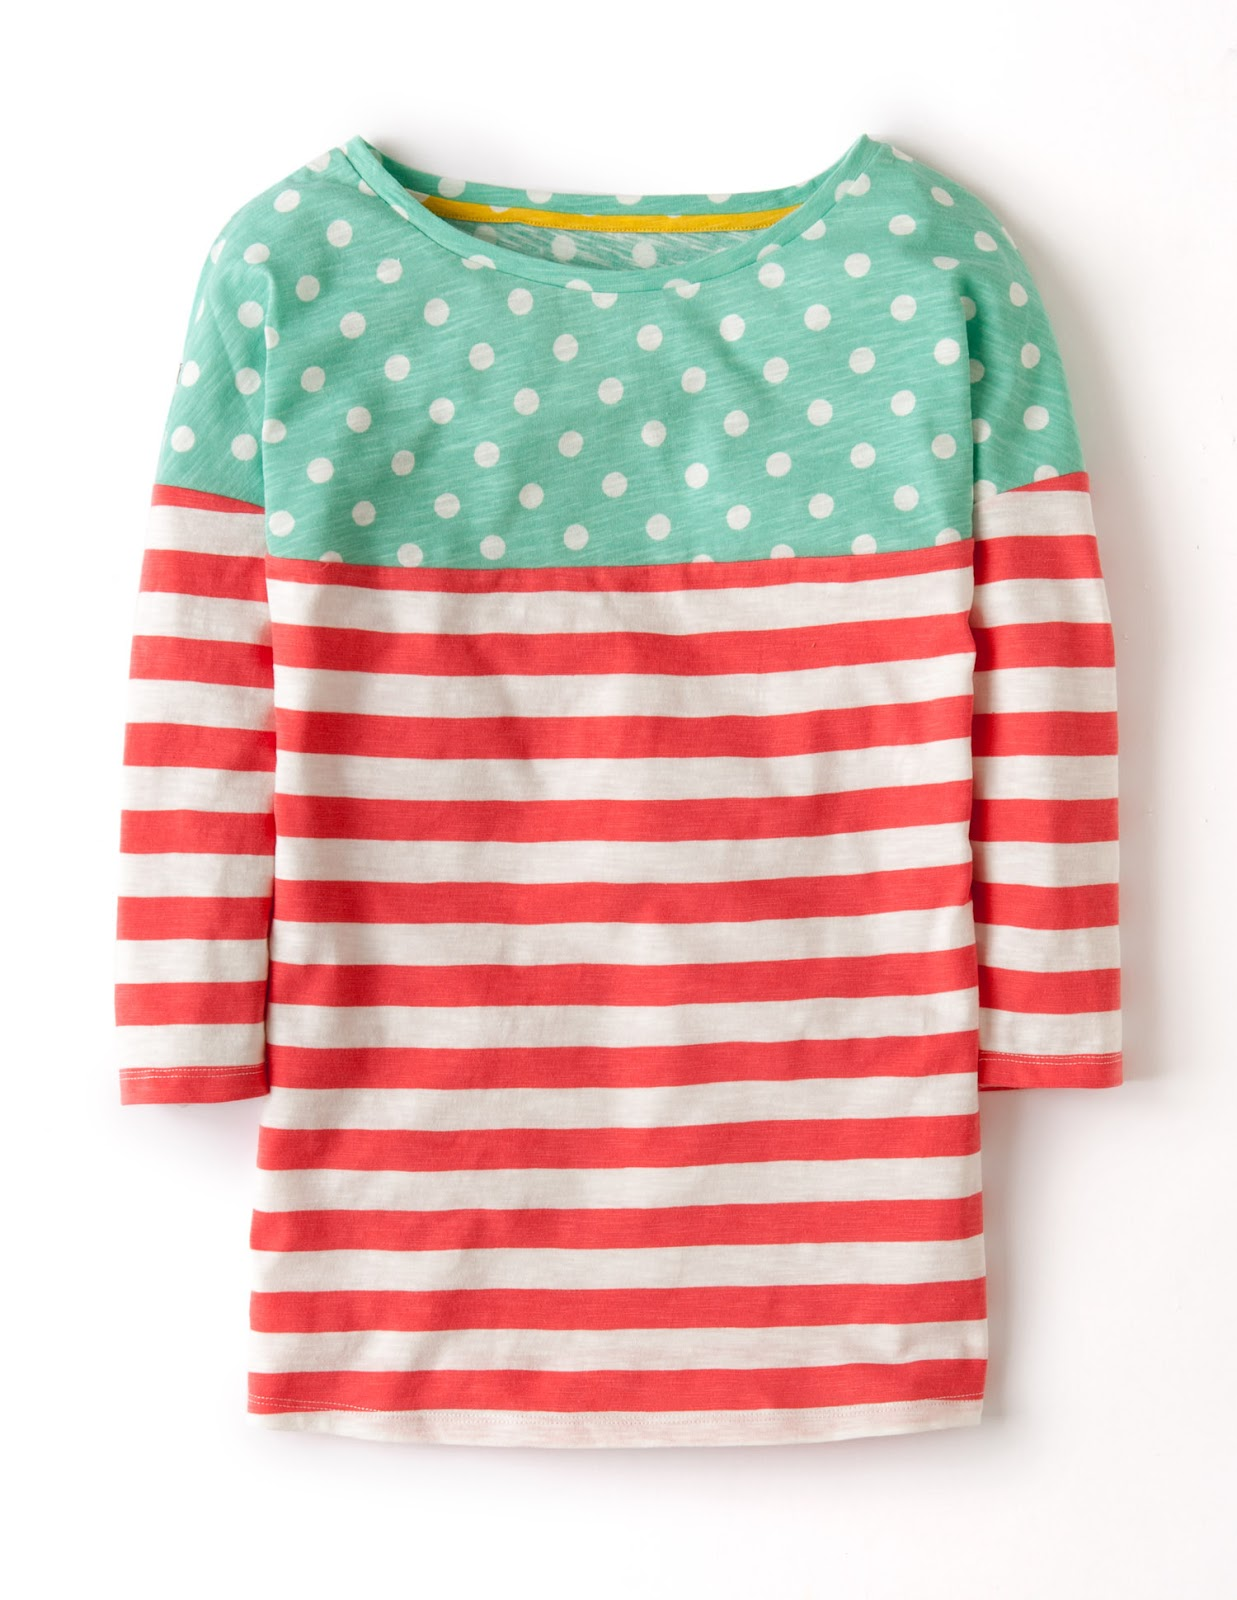 Breakfast at anthropologie boden sale up to 40 off for Boden preview uk